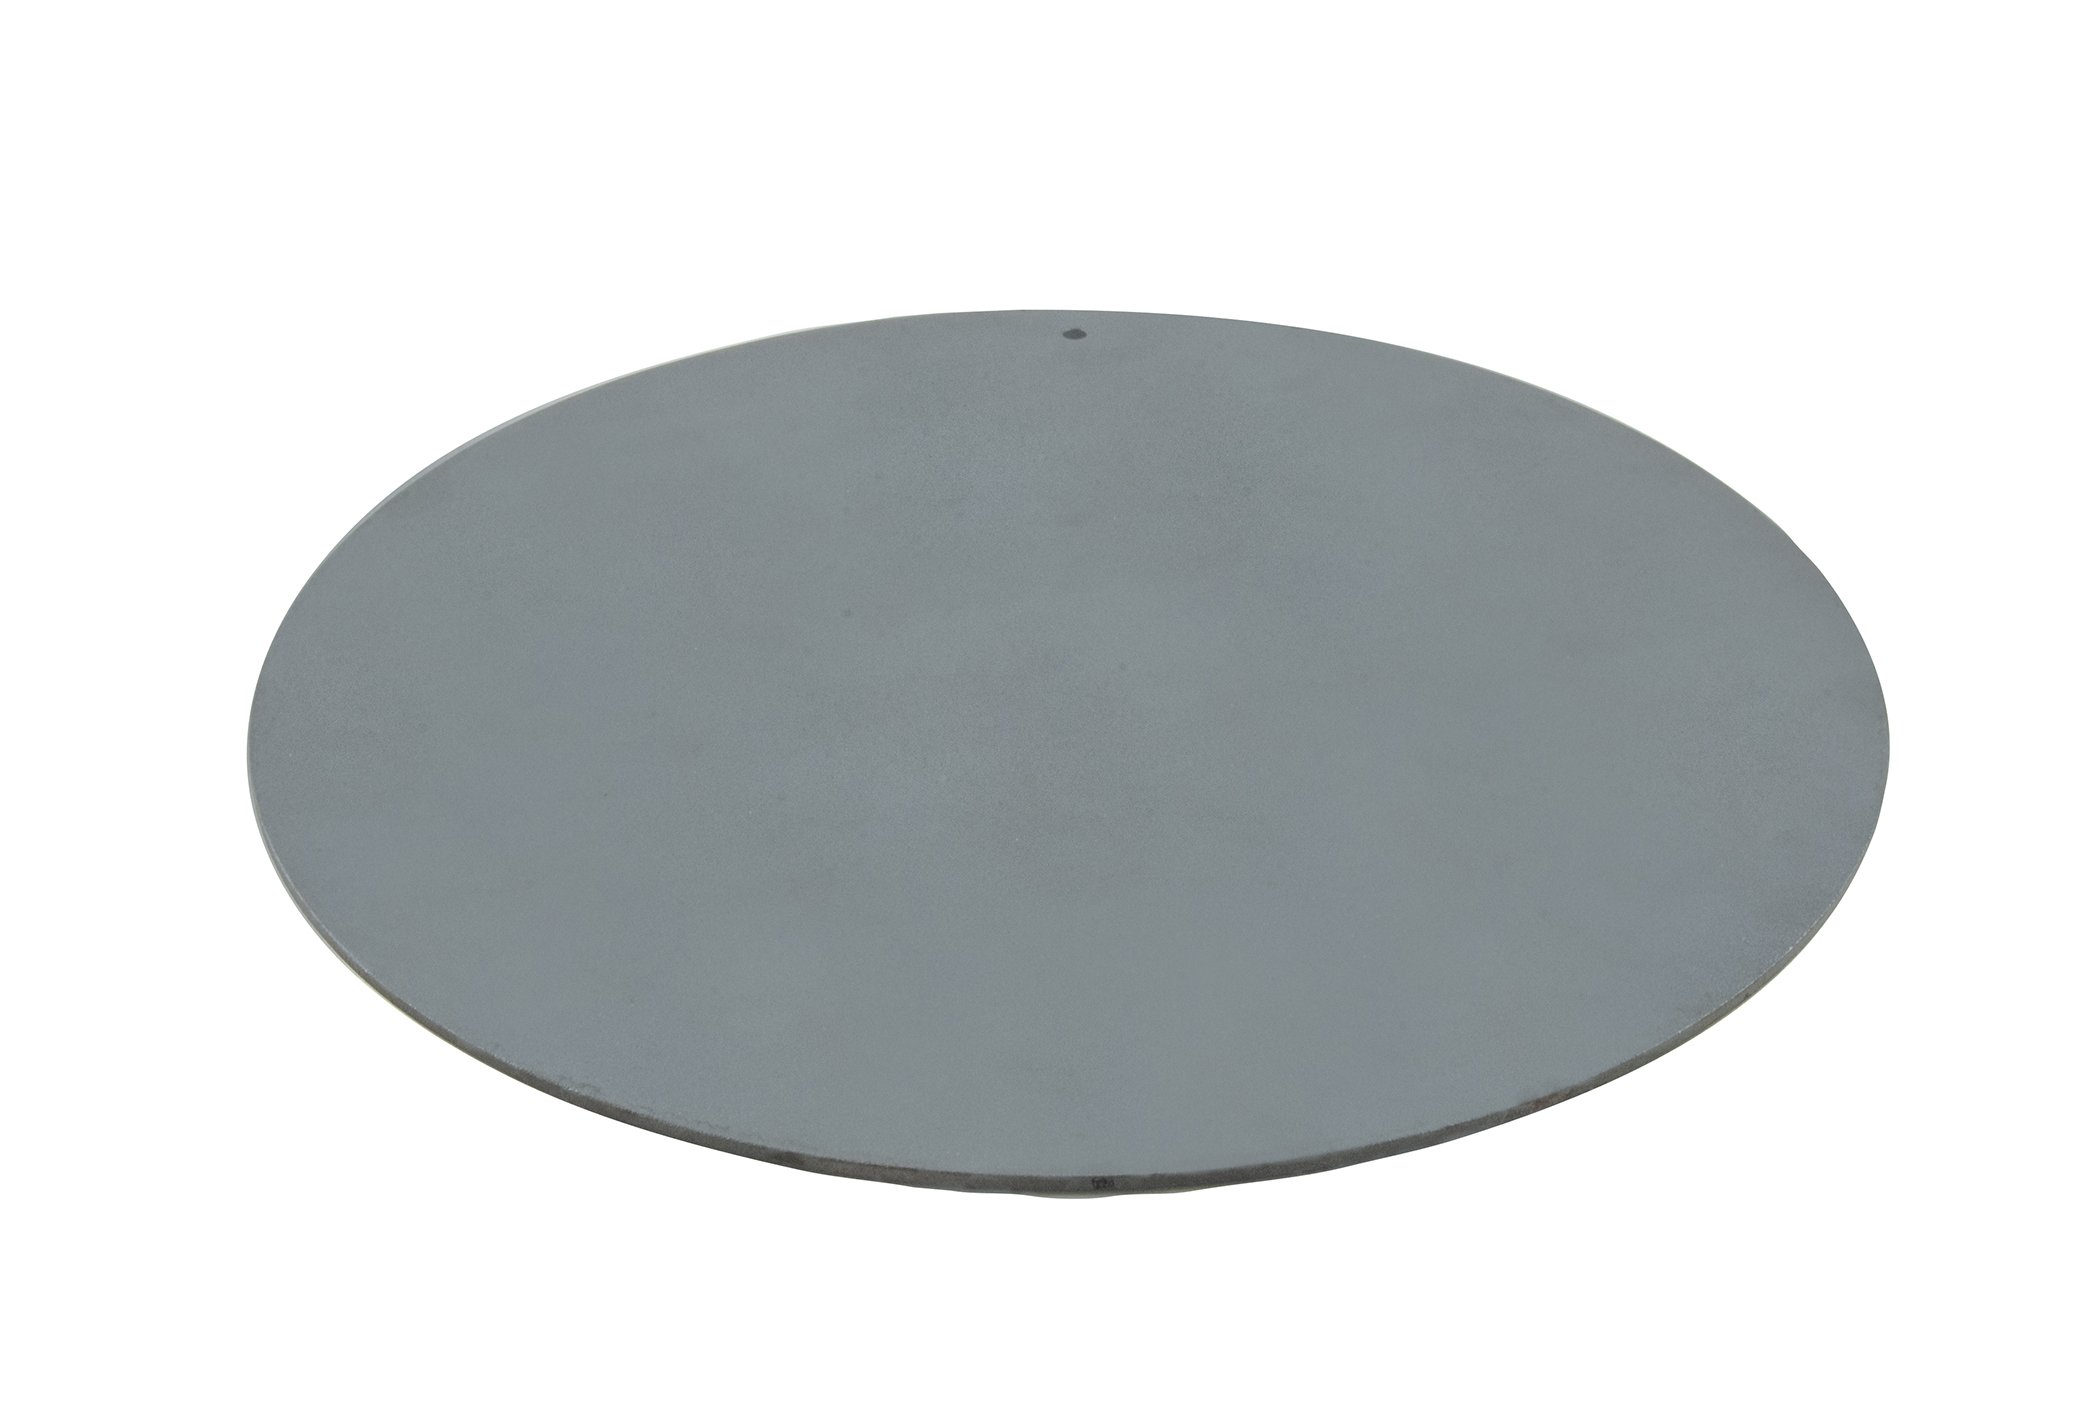 Pizzacraft Steel Baking Plate / 14 Round - PC0307 by Pizzacraft